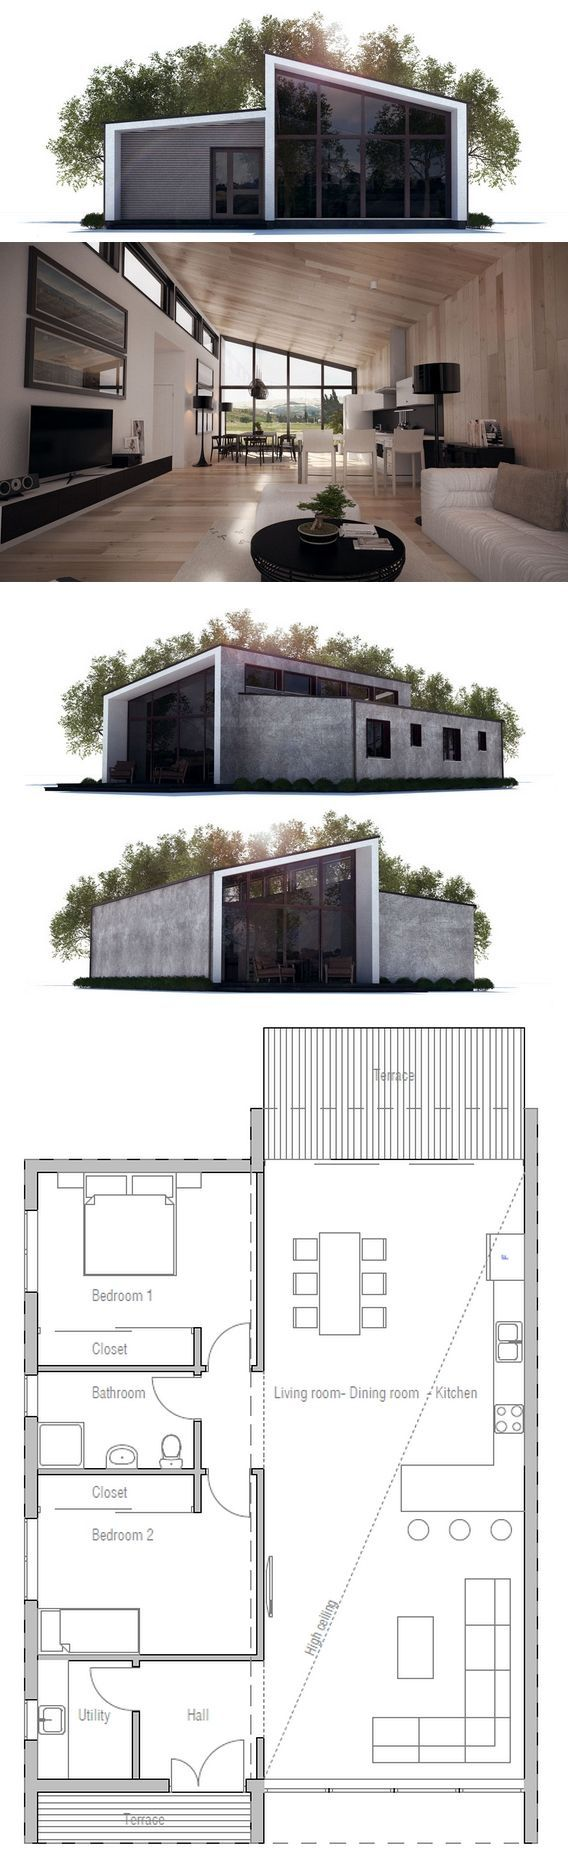 Plan de petite maison plus · simple house designtwo